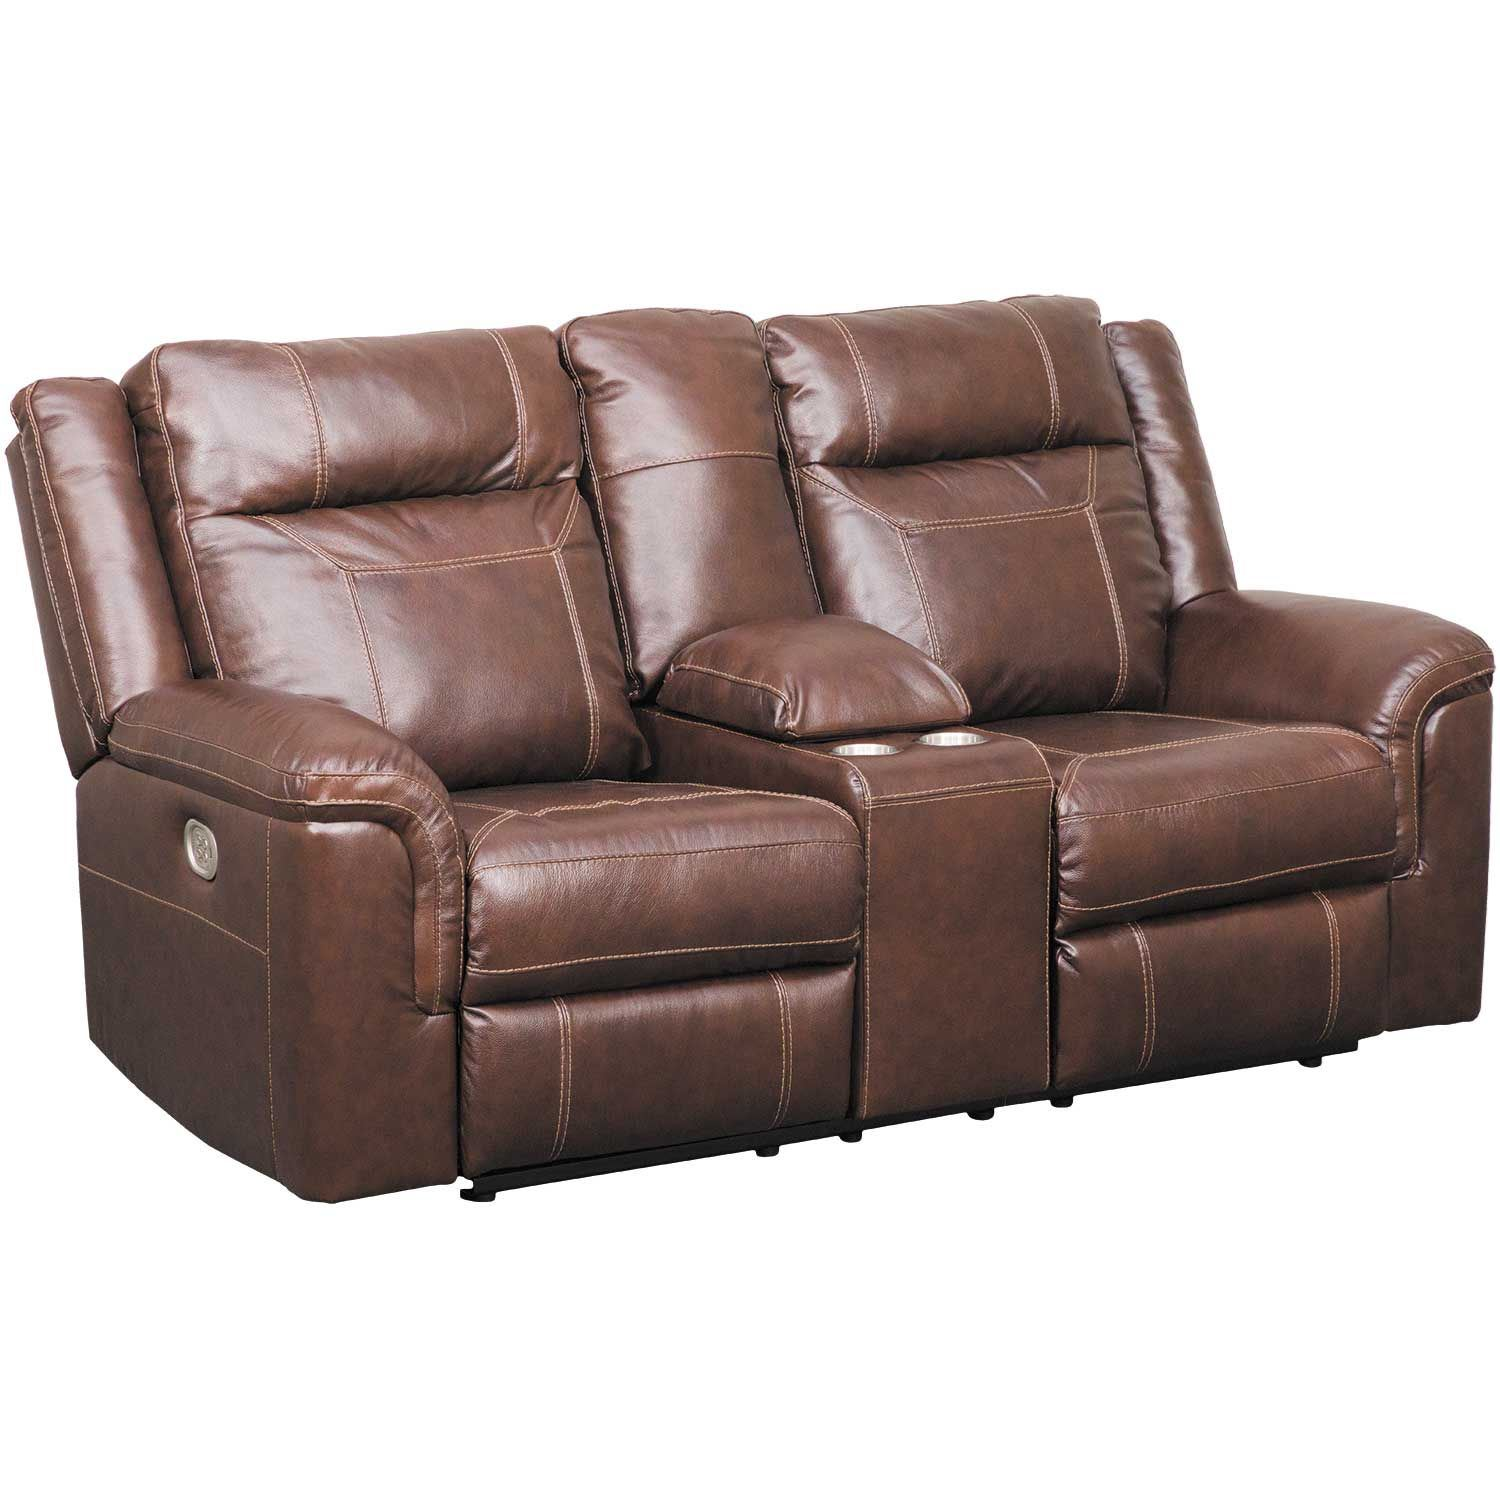 Super Wyline Leather Power Reclining Console Loveseat With Power Adjustable Headrest Pdpeps Interior Chair Design Pdpepsorg